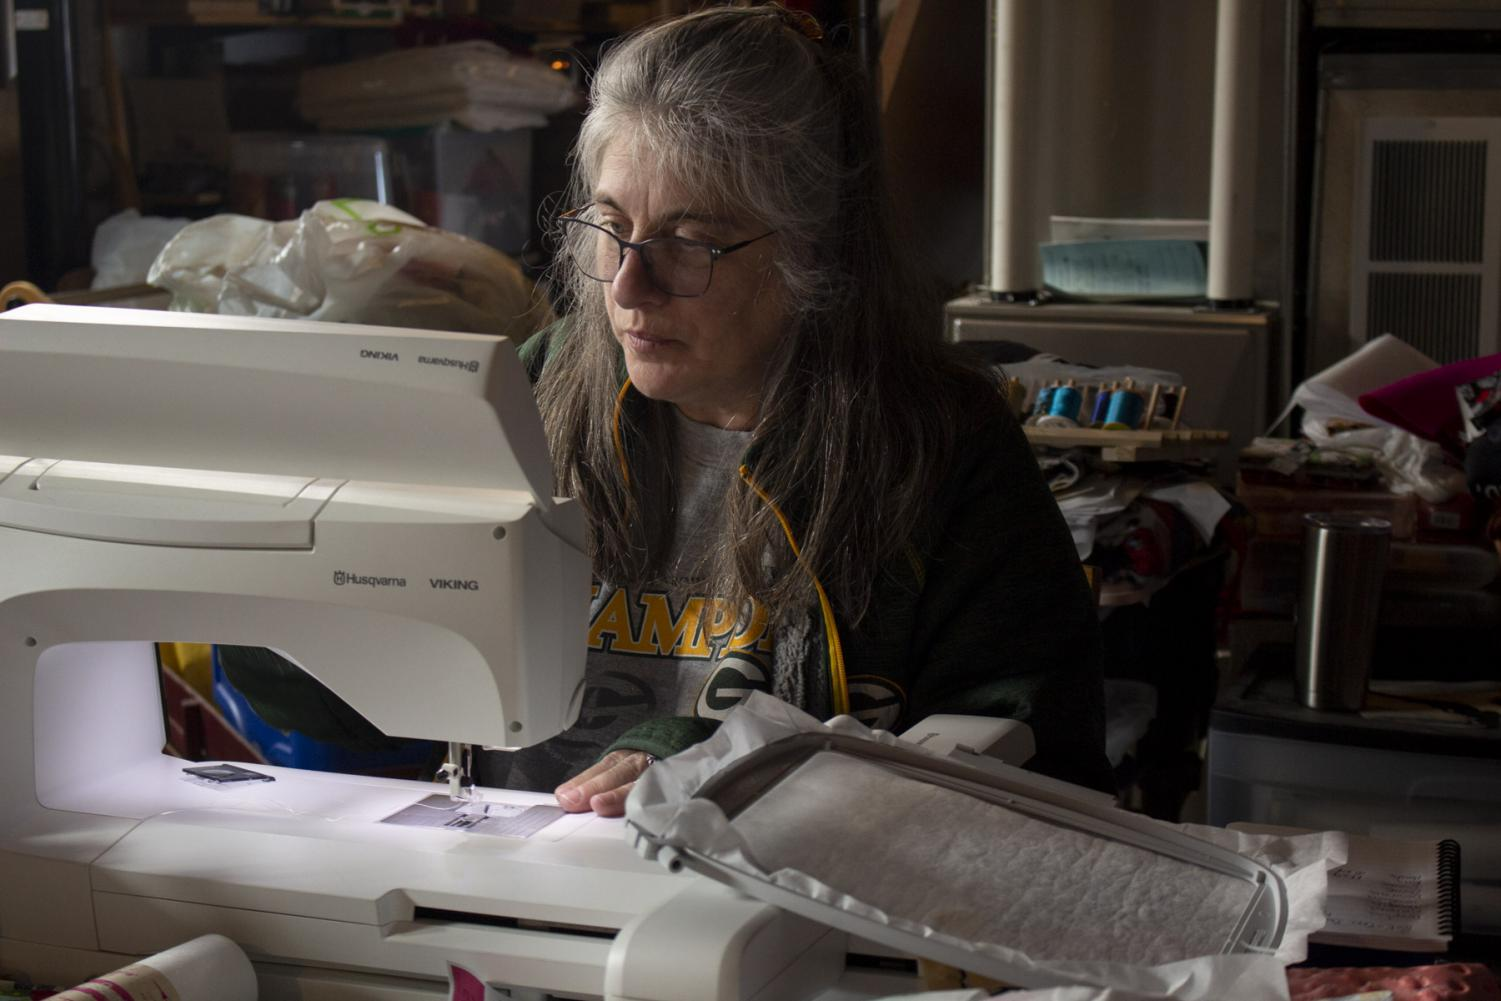 Terese Brunner changes the bobbin on her embroidery/sewing machine on April 2, 2020 at her home in New Holstein, Wis. Brunner is taking advantage of free time and has been testing out new embroidery designs and finishing up a baby blanket for her expecting goddaughter.